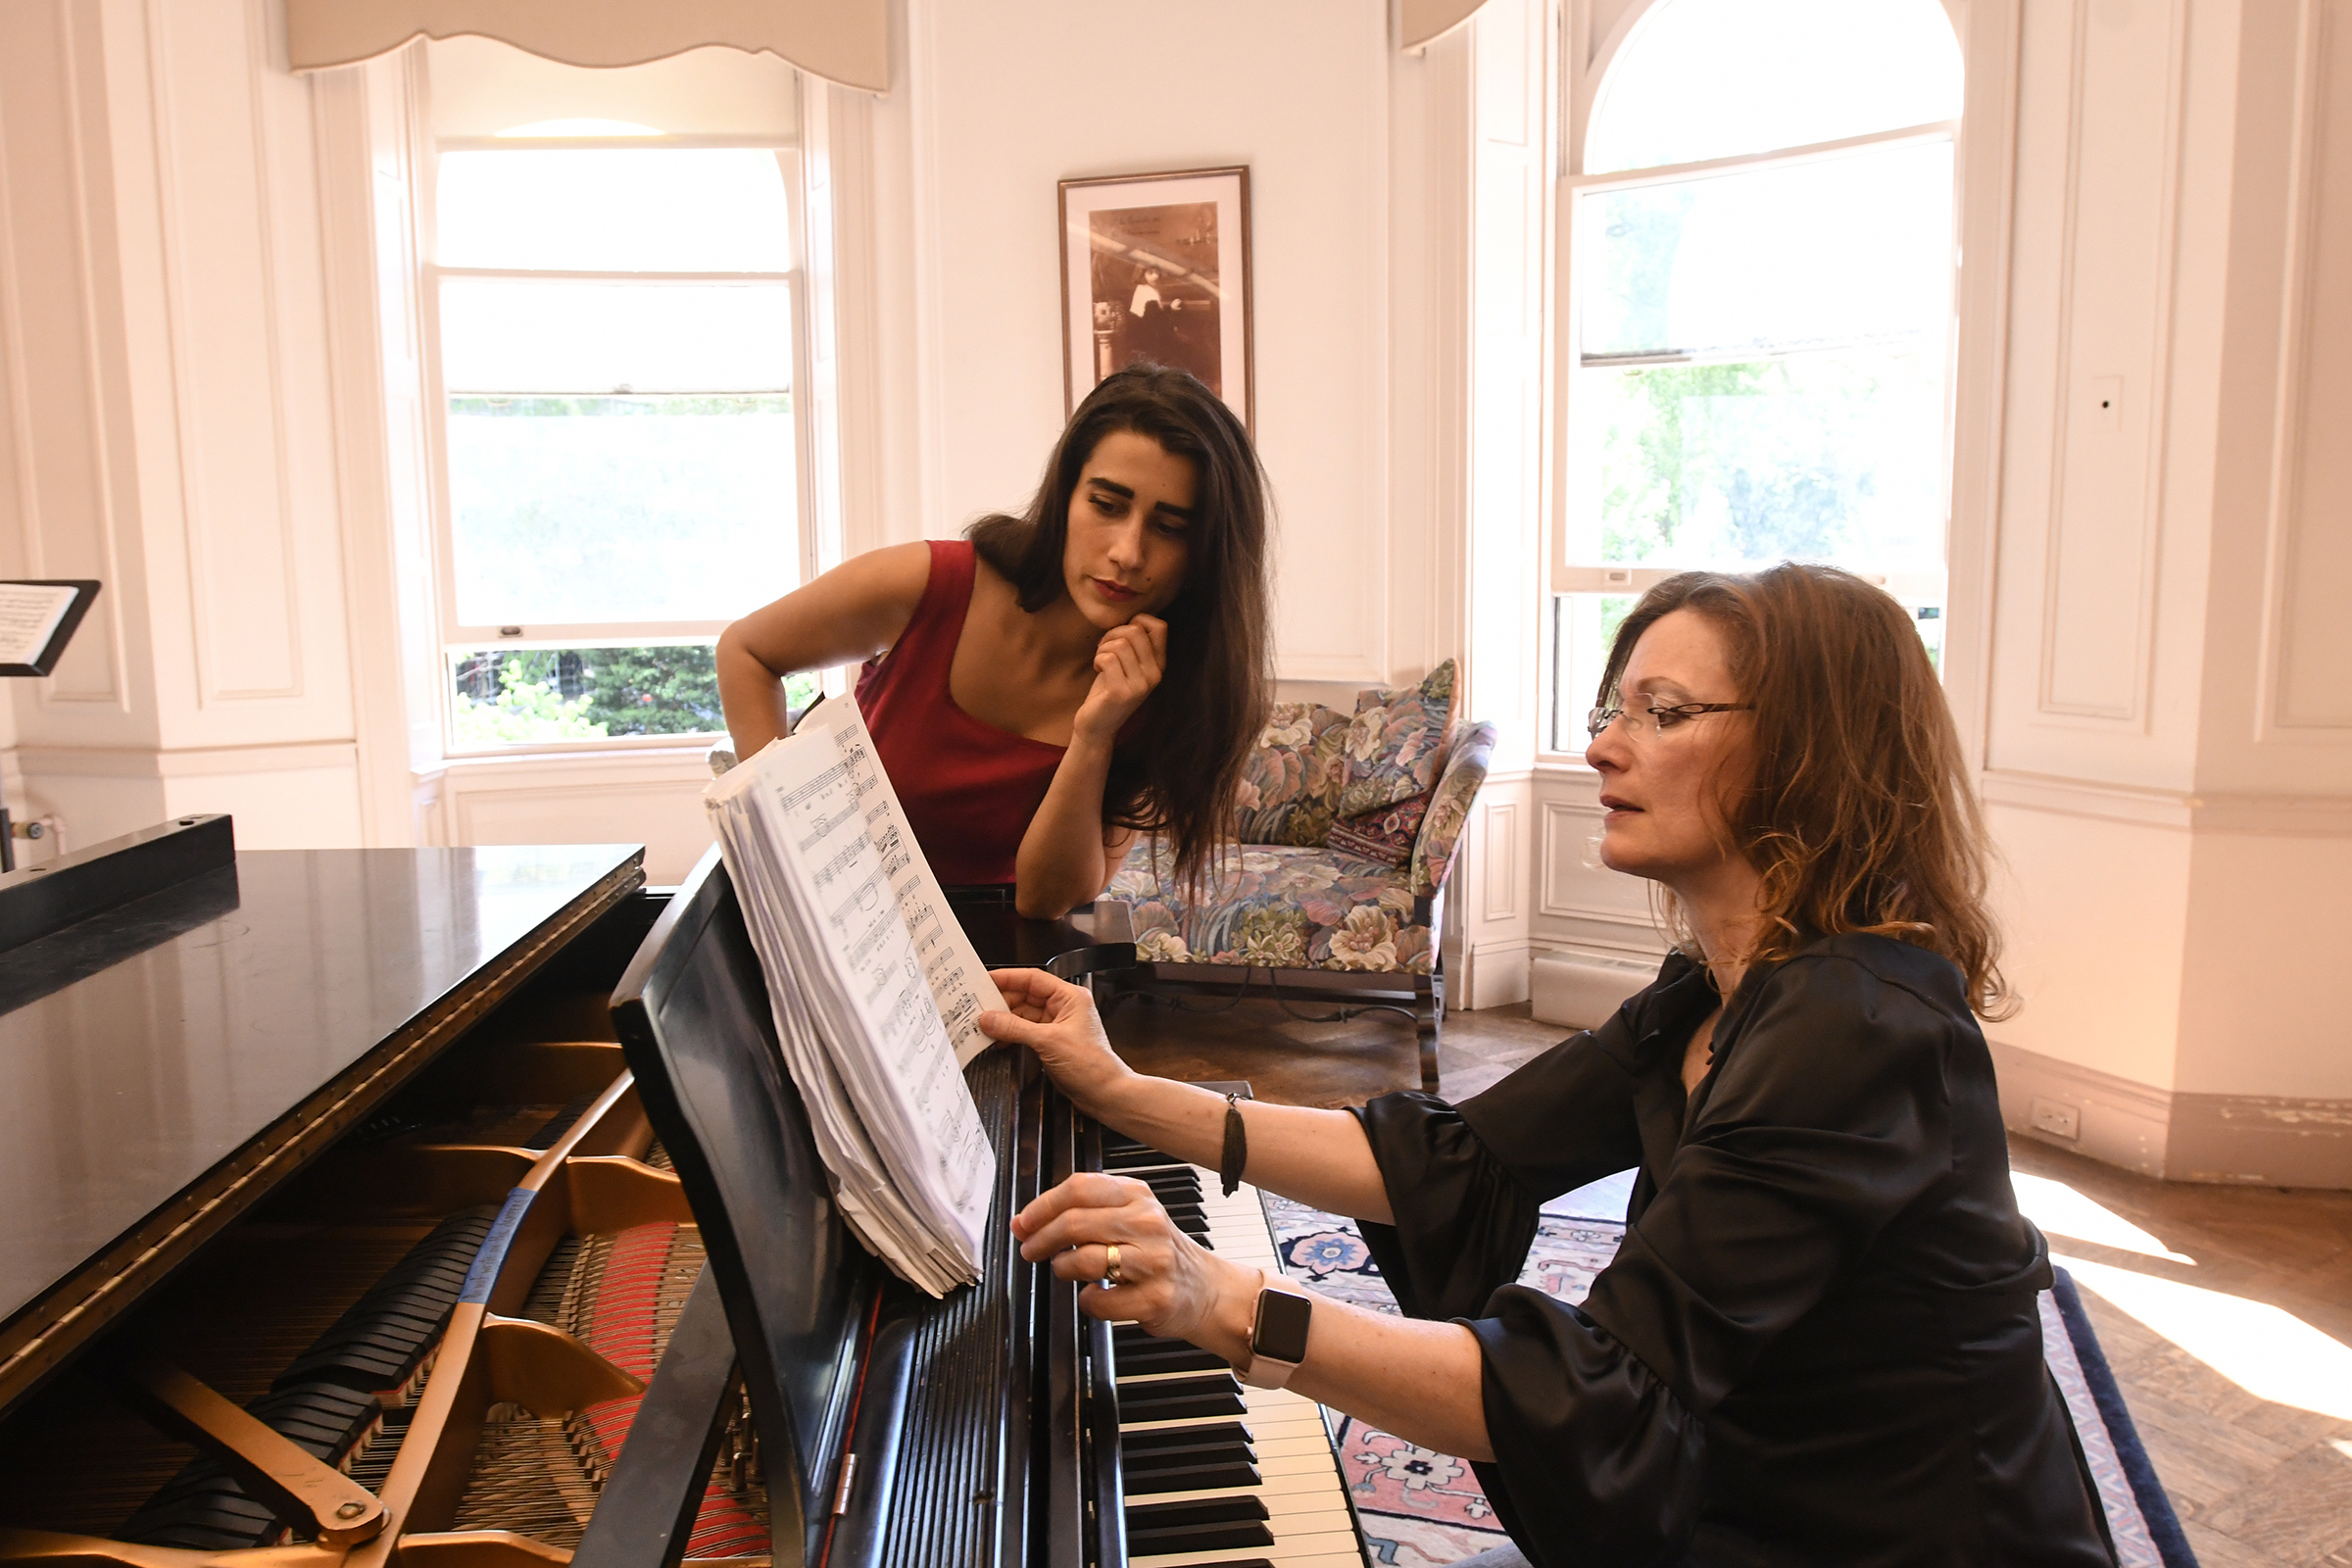 Danielle Orlando, opera coach at the Curtis Institute of Music, at the keyboard with a student, soprano Elena Perroni